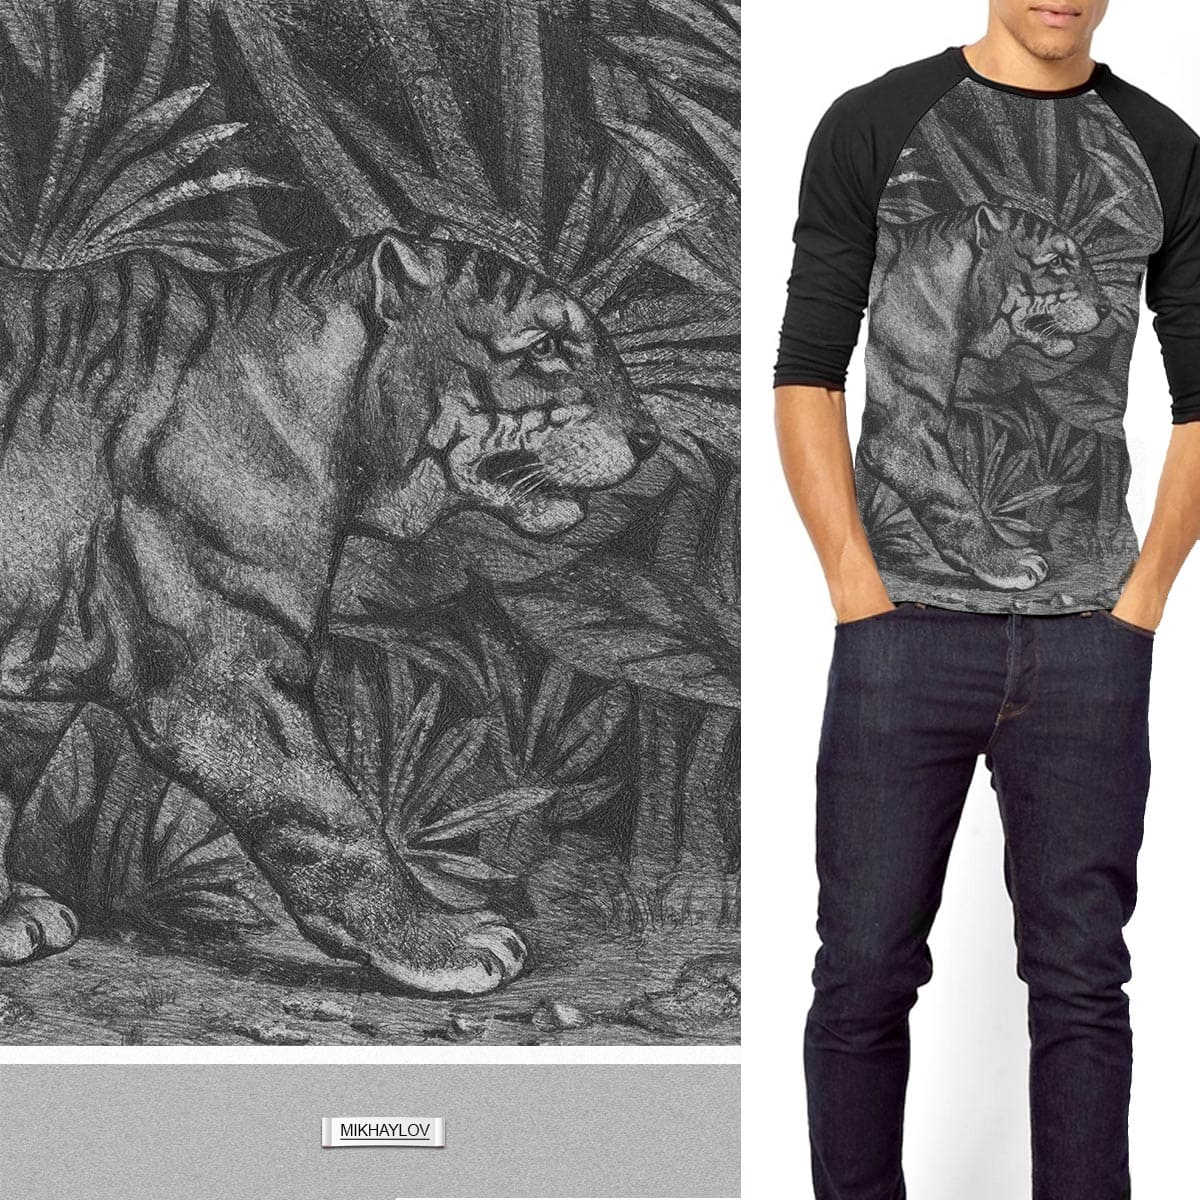 the wild beauties by MIKHAYLOV on Threadless